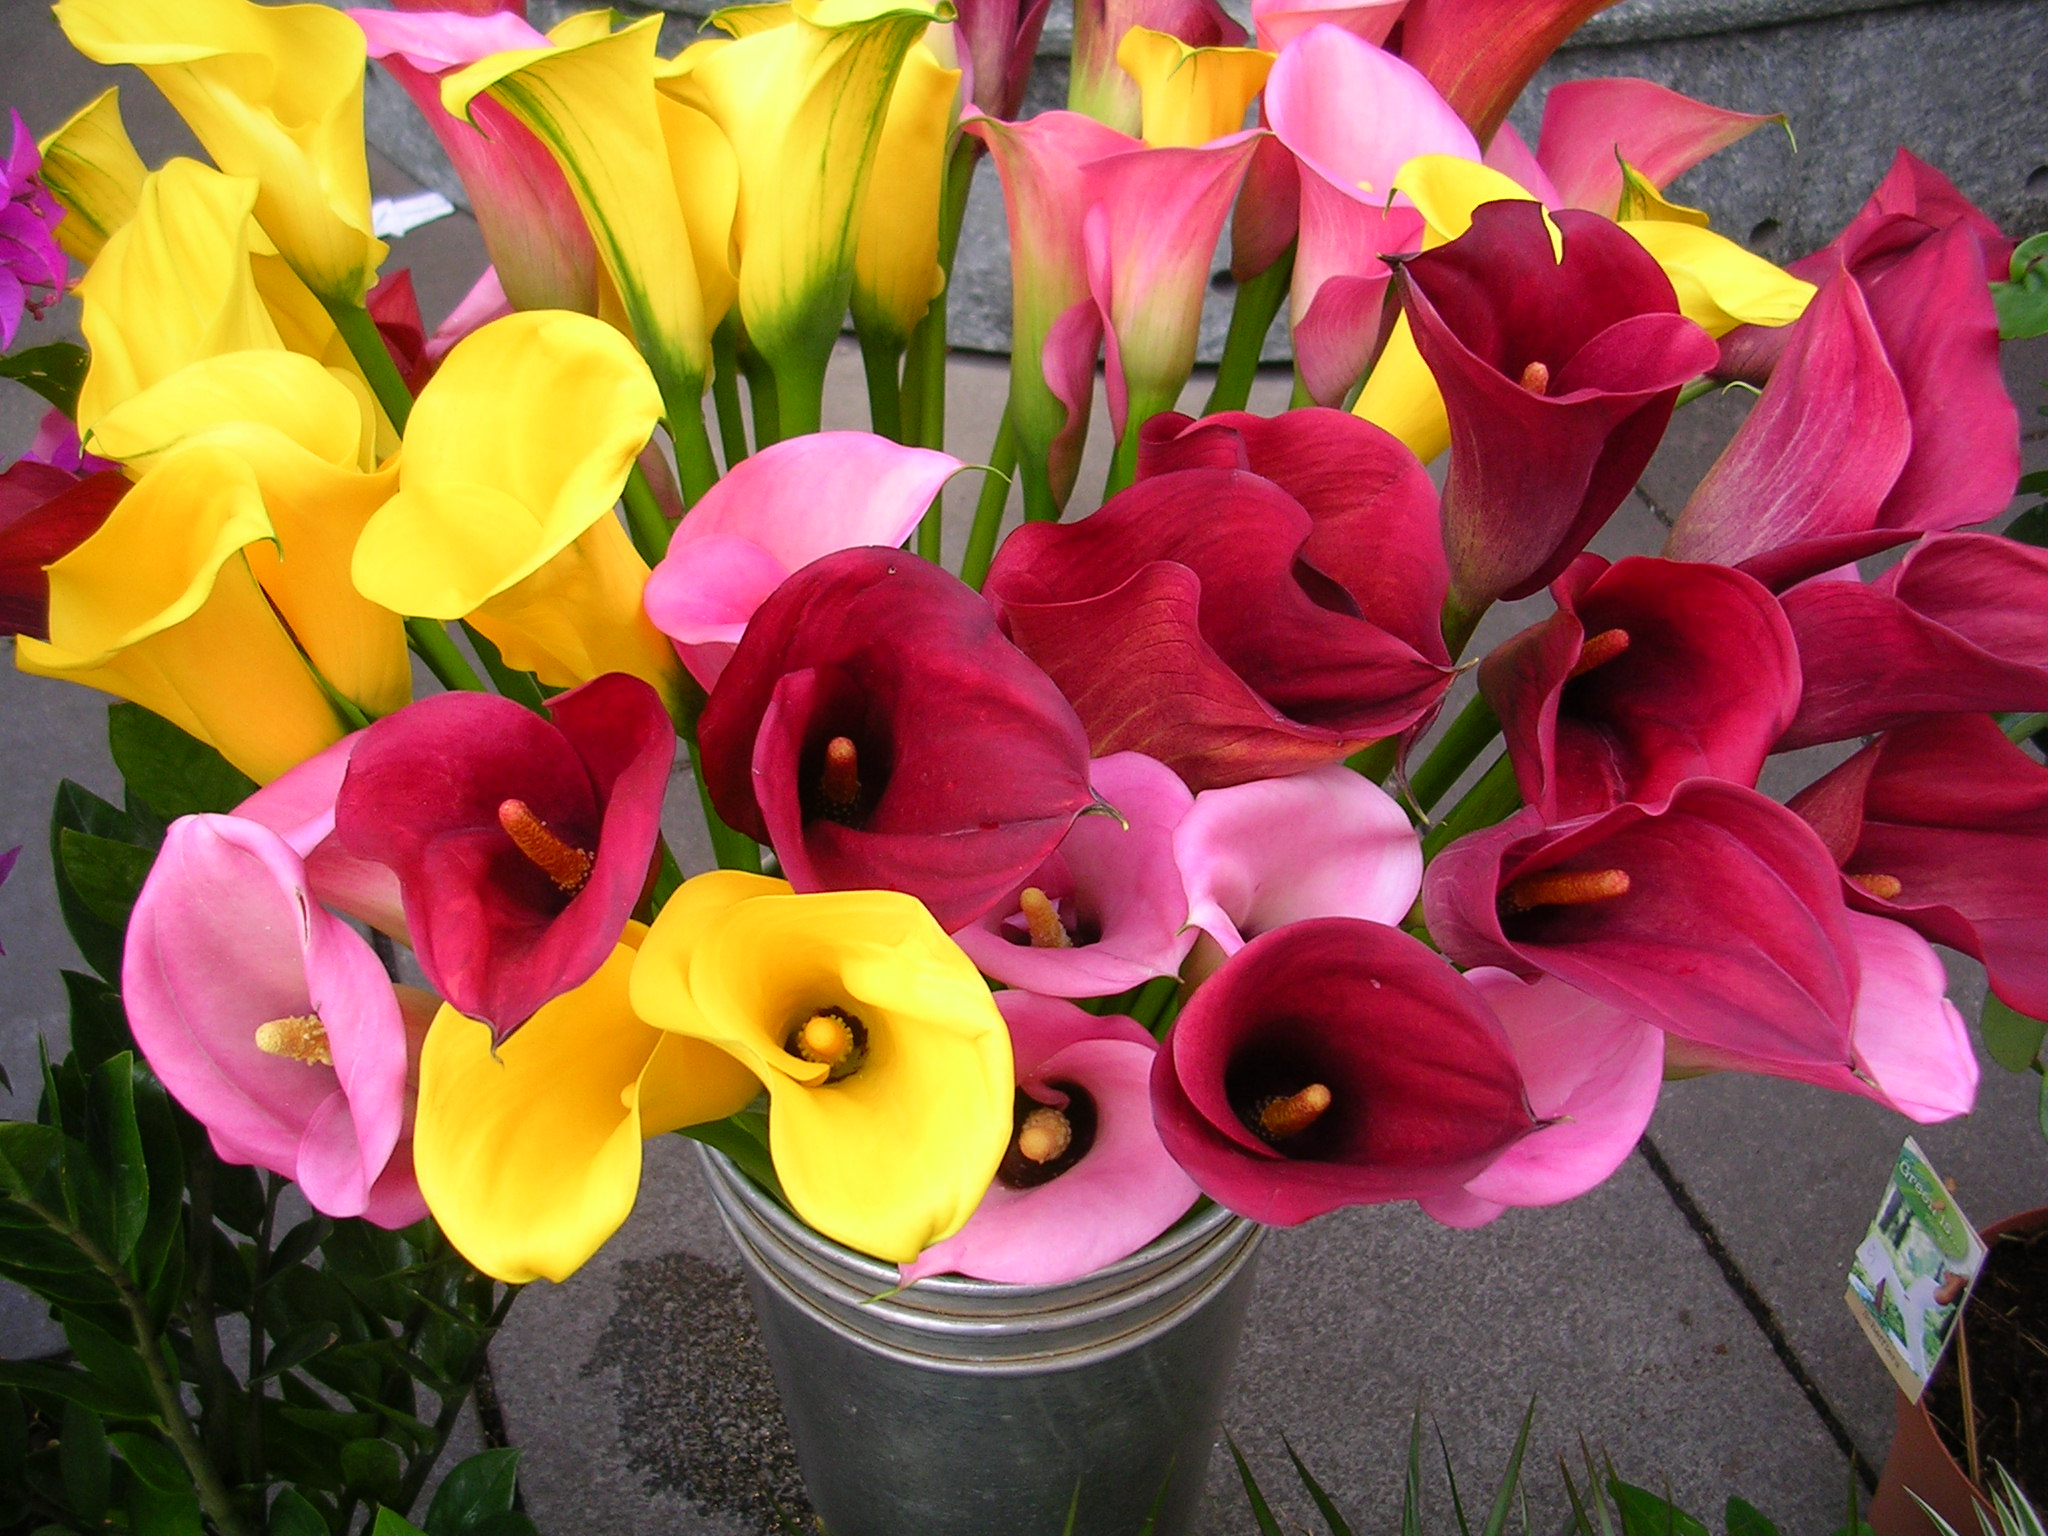 Flower bulbs online india buy seeds online india terrace gardening calla lily flower bulbs india izmirmasajfo